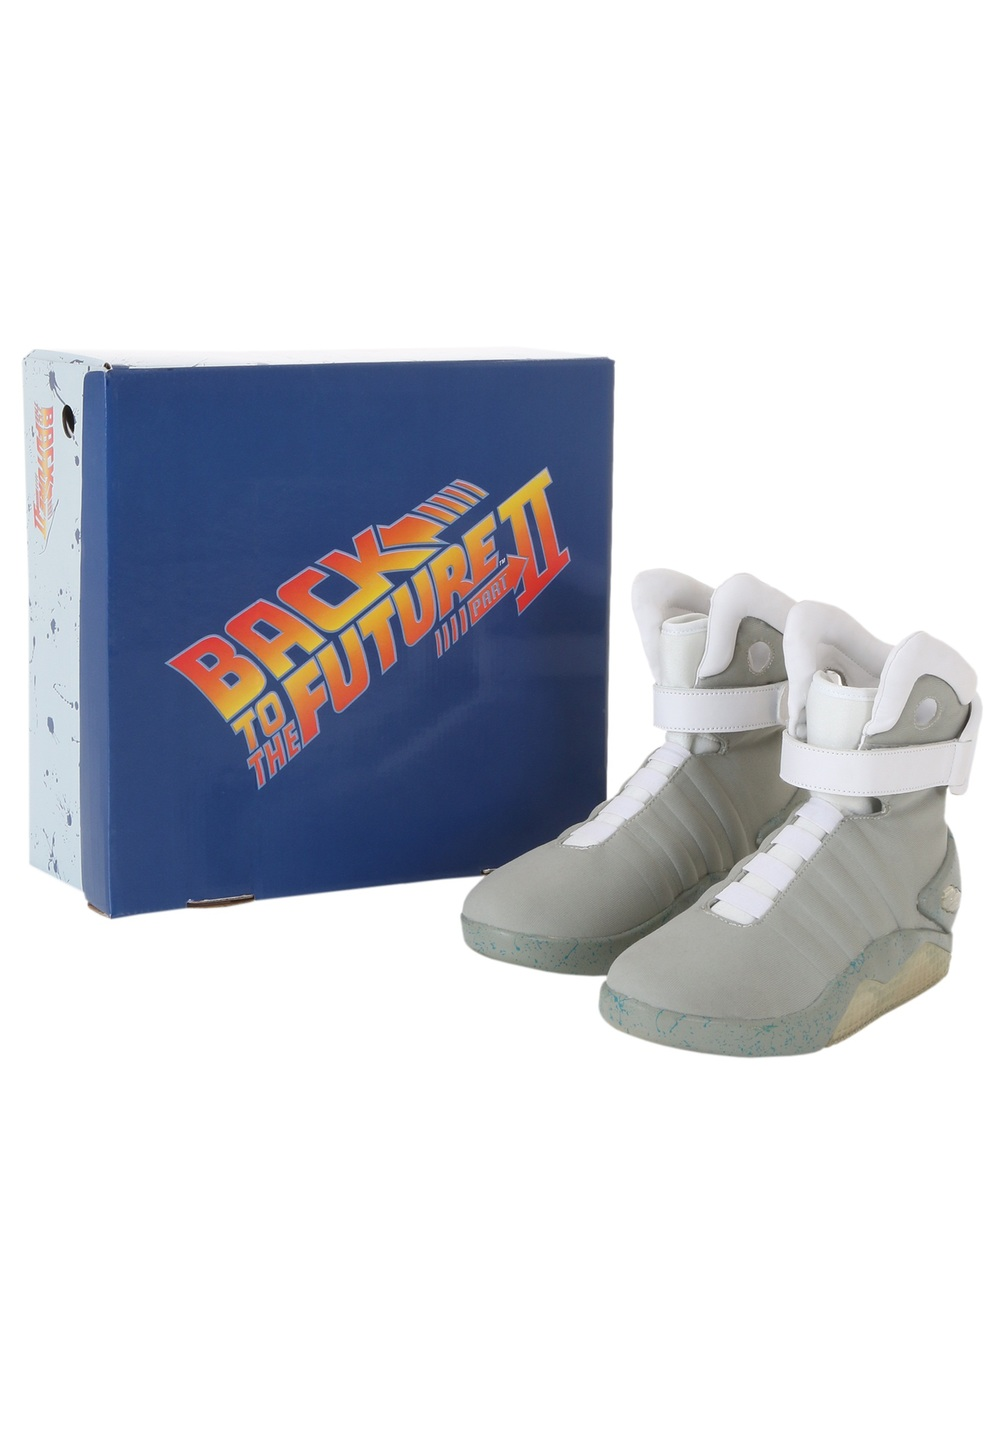 back-to-the-future-2-light-up-shoes-alt-1.jpg